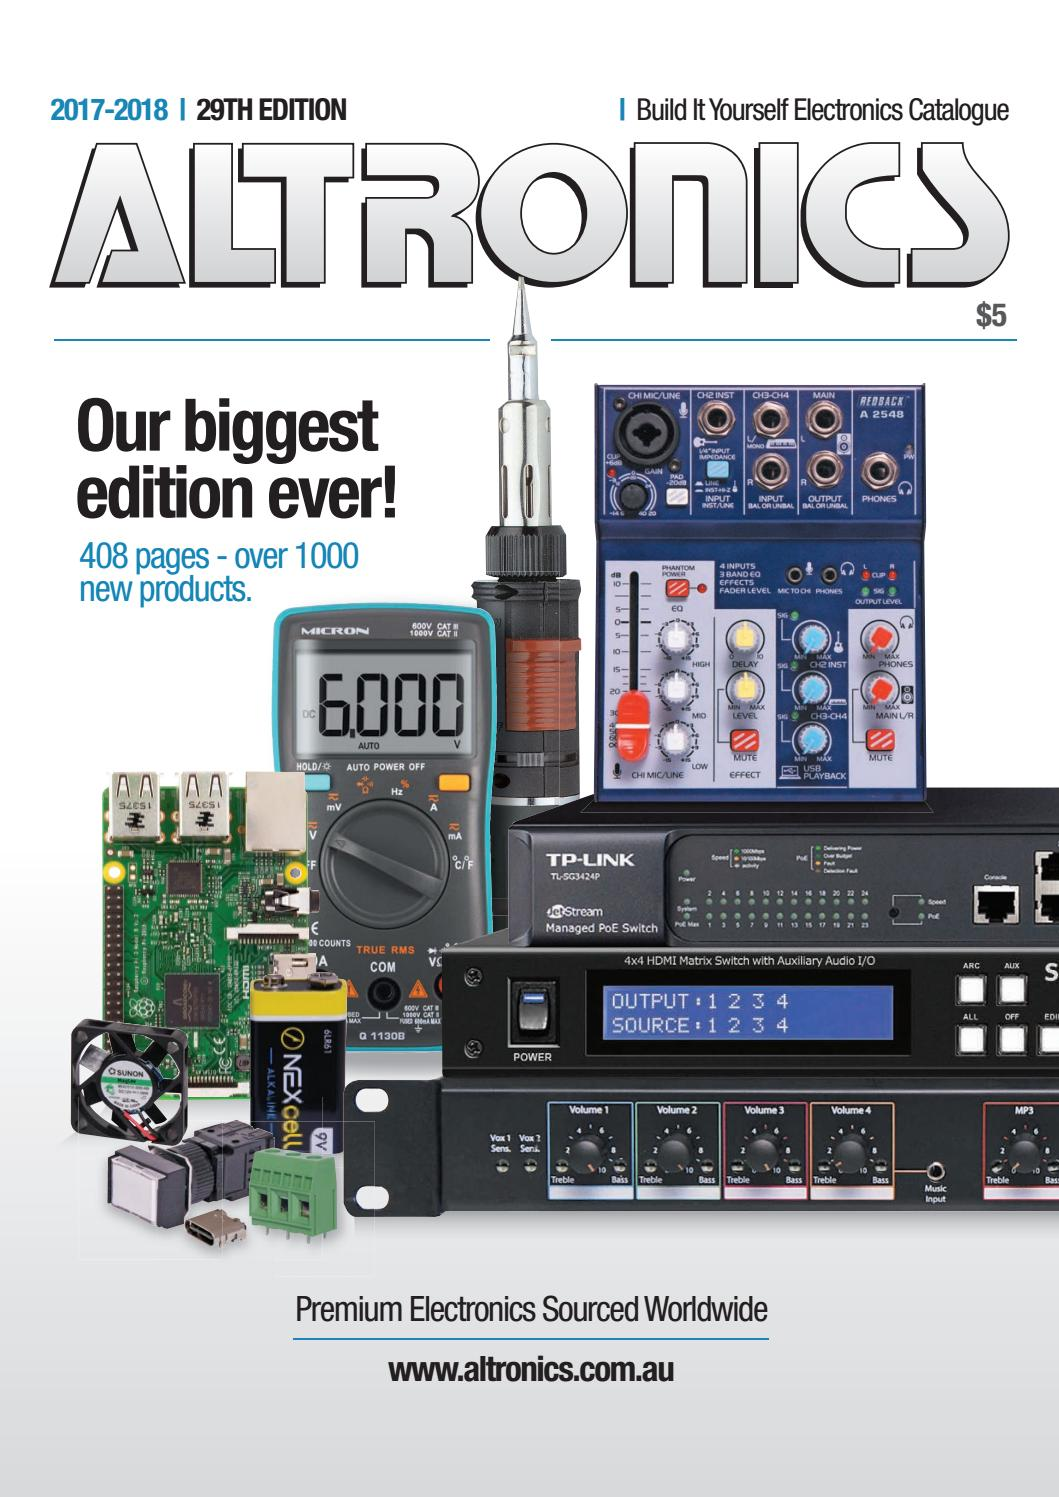 Altronics 2017 18 Electronics Catalogue by AltronicsAU - issuu on